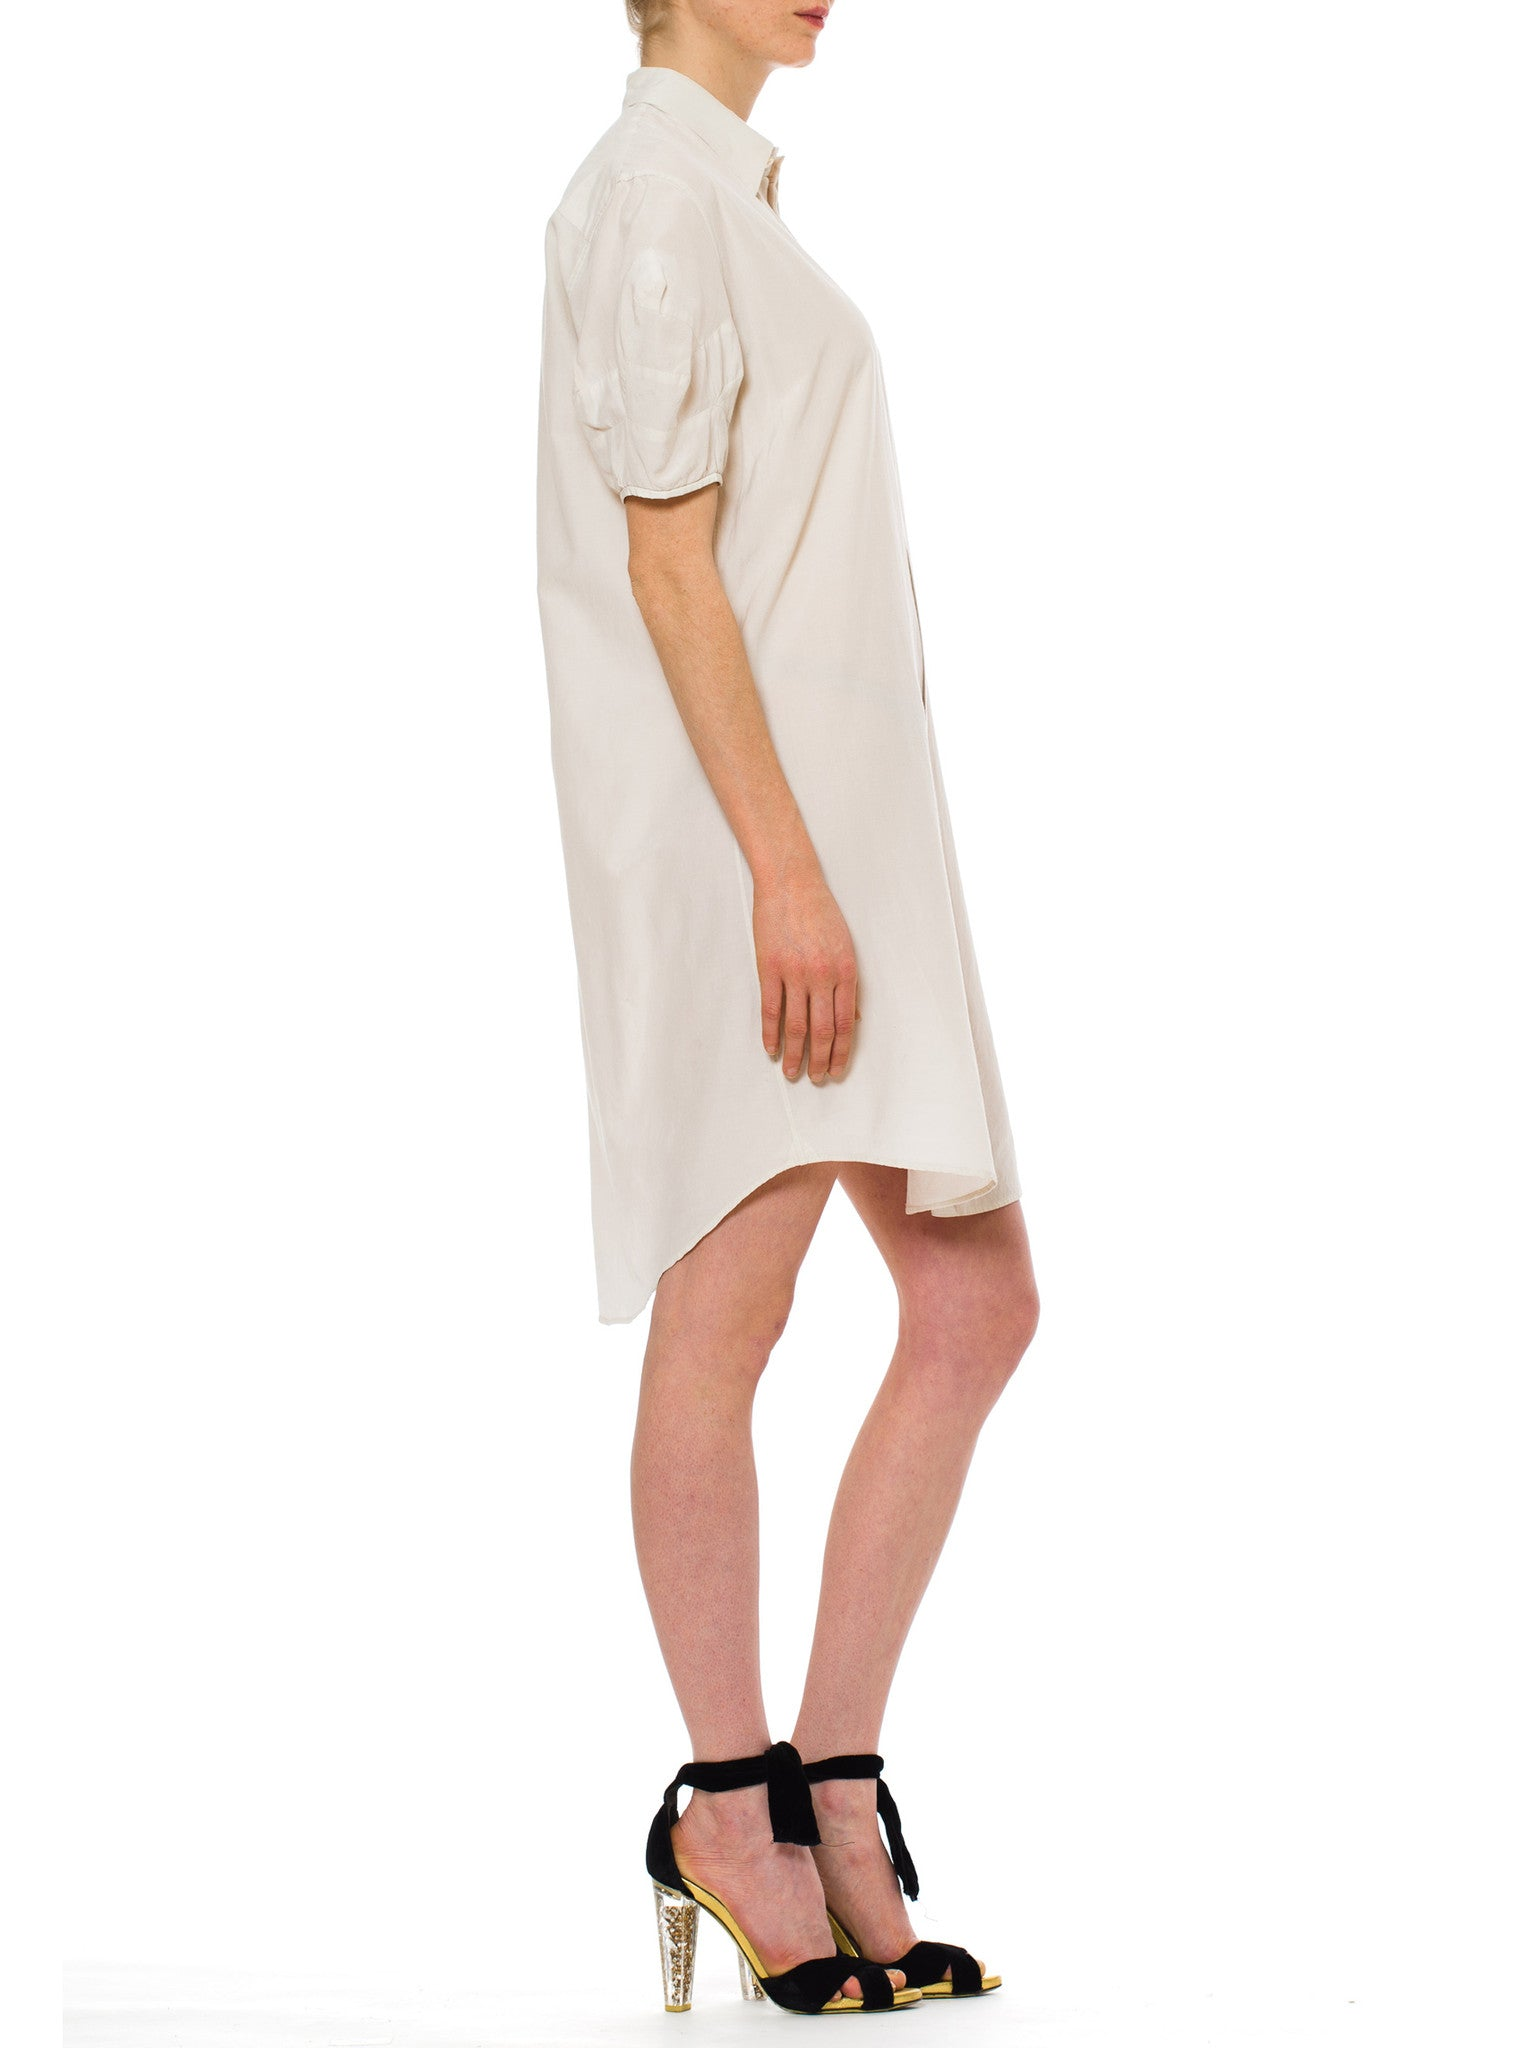 1980s Vintage Sacai White Shirt Dress